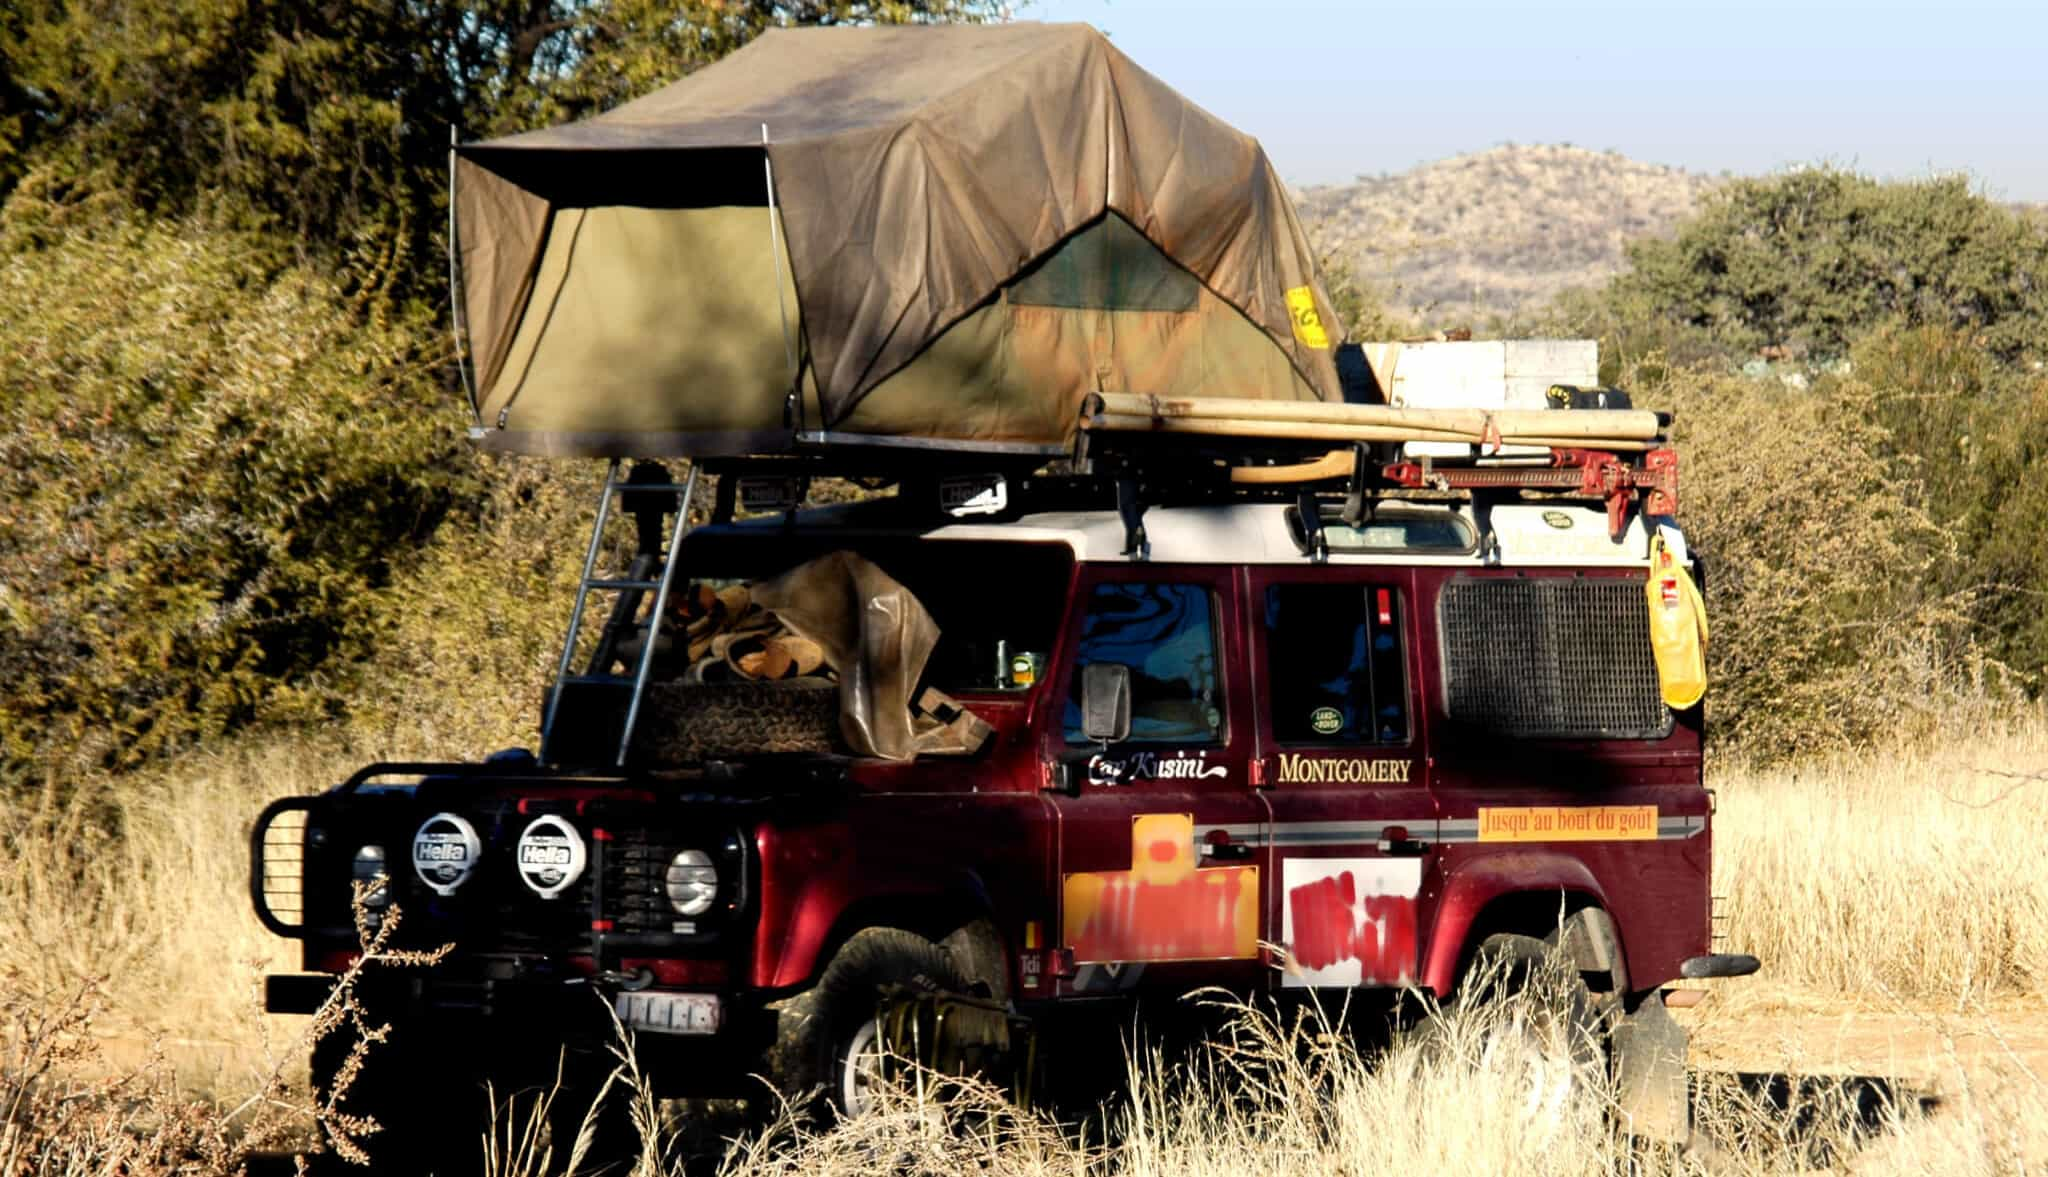 Luxury & standard camping & caravanning sites | Camping & caravanning sites in Windhoek | Arebbusch Travel Lodge